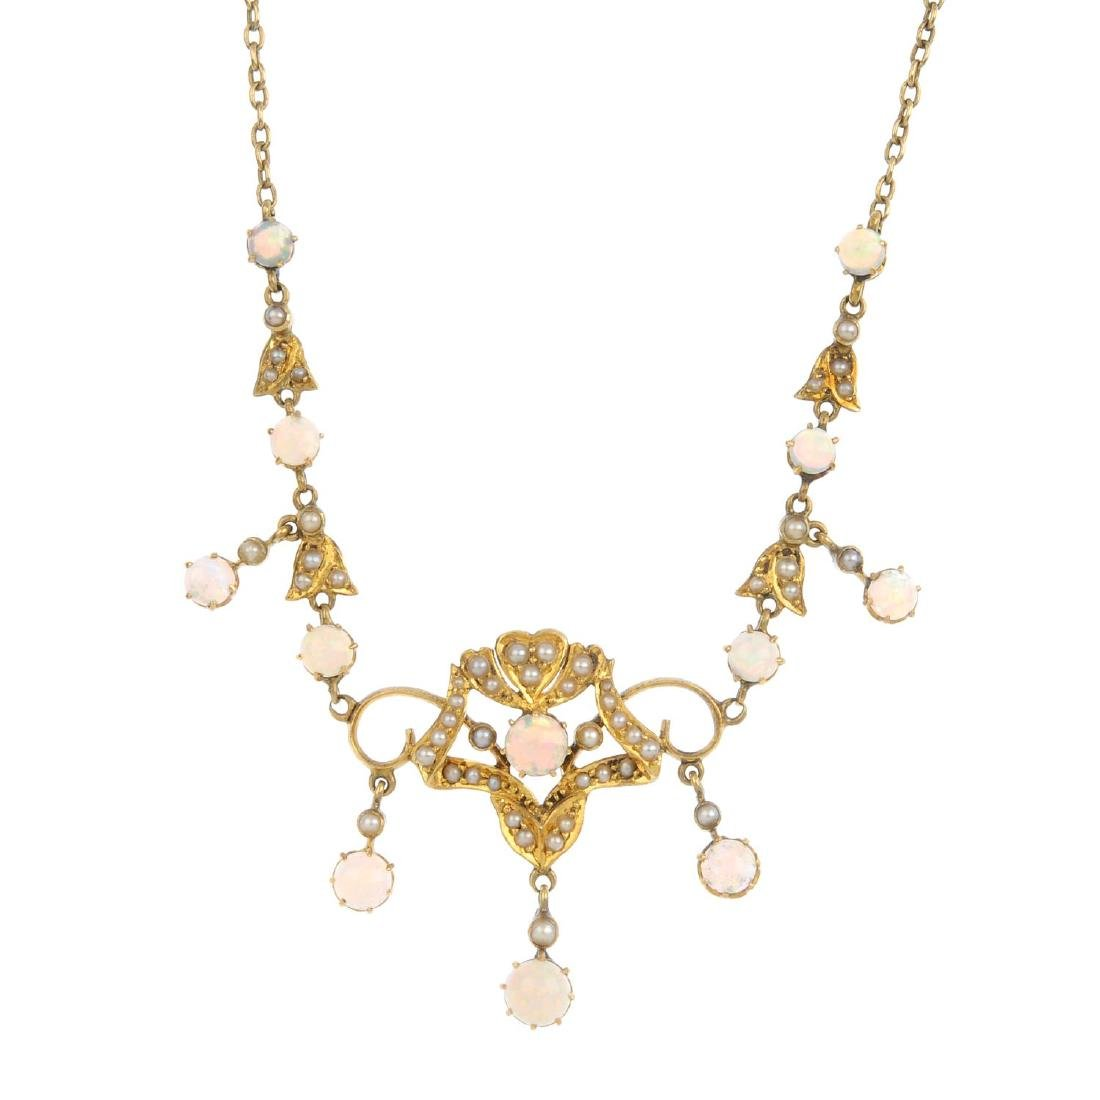 An early 20th century 15ct gold opal and split pearl